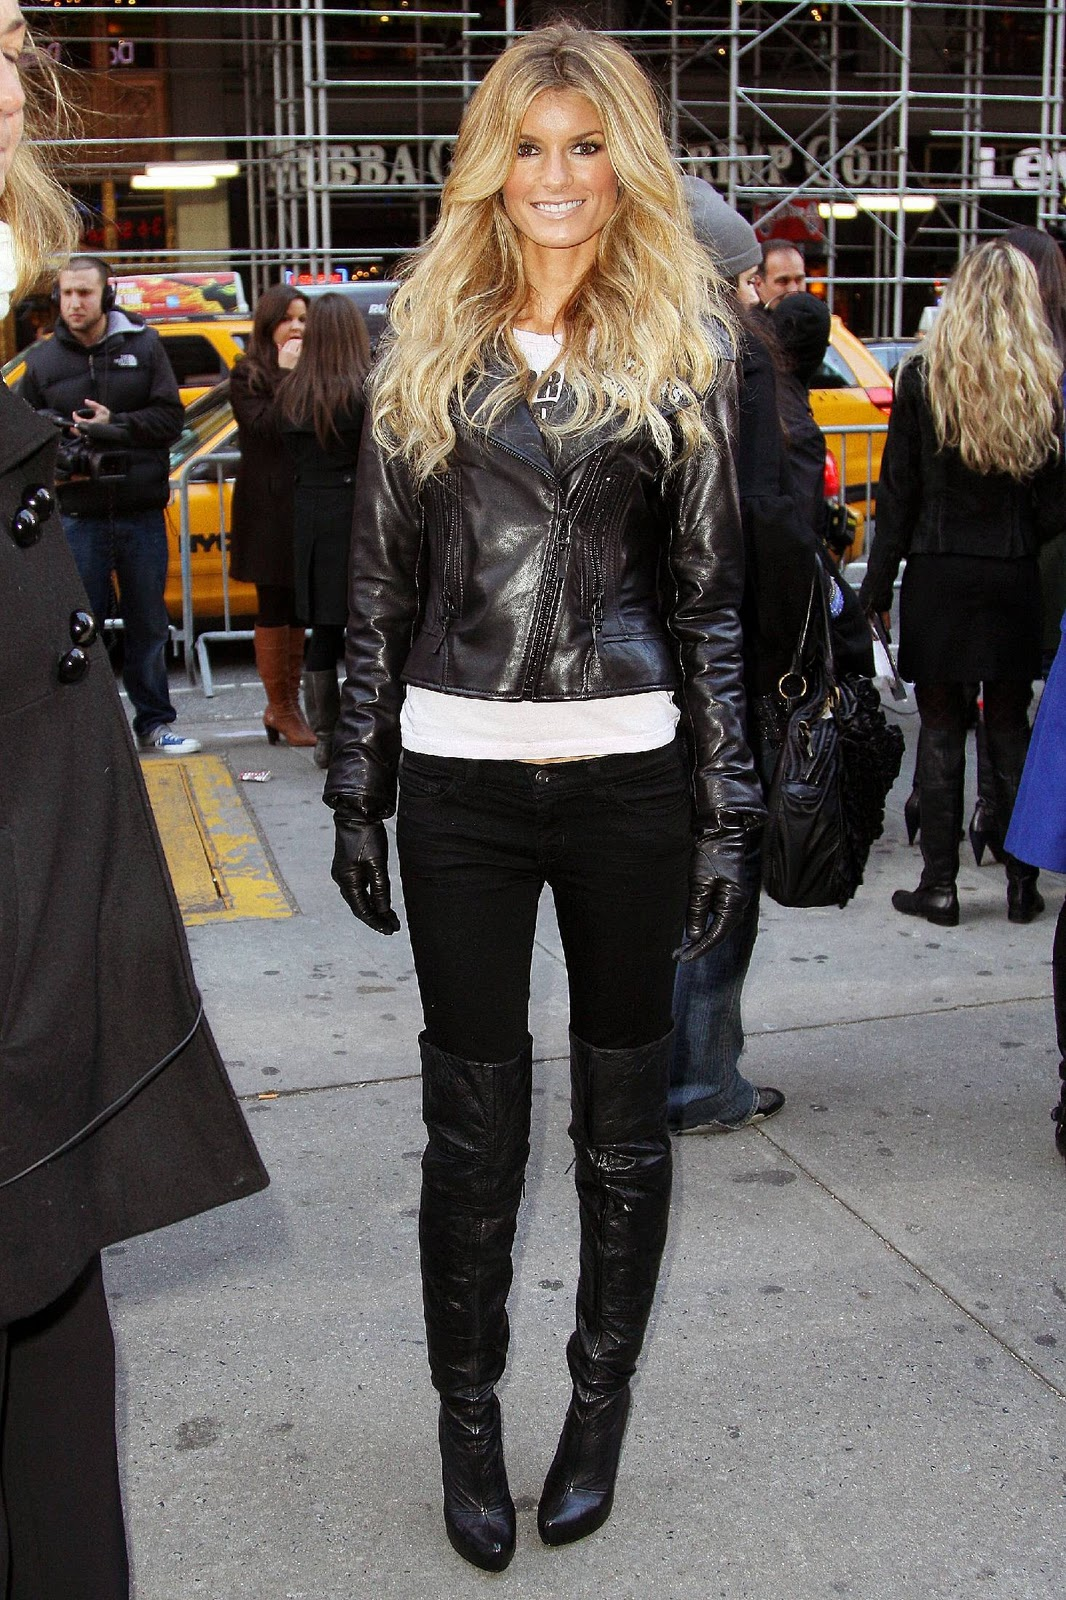 Celebs In Thigh High Boots — Pics Of Fashion Inspiration ...